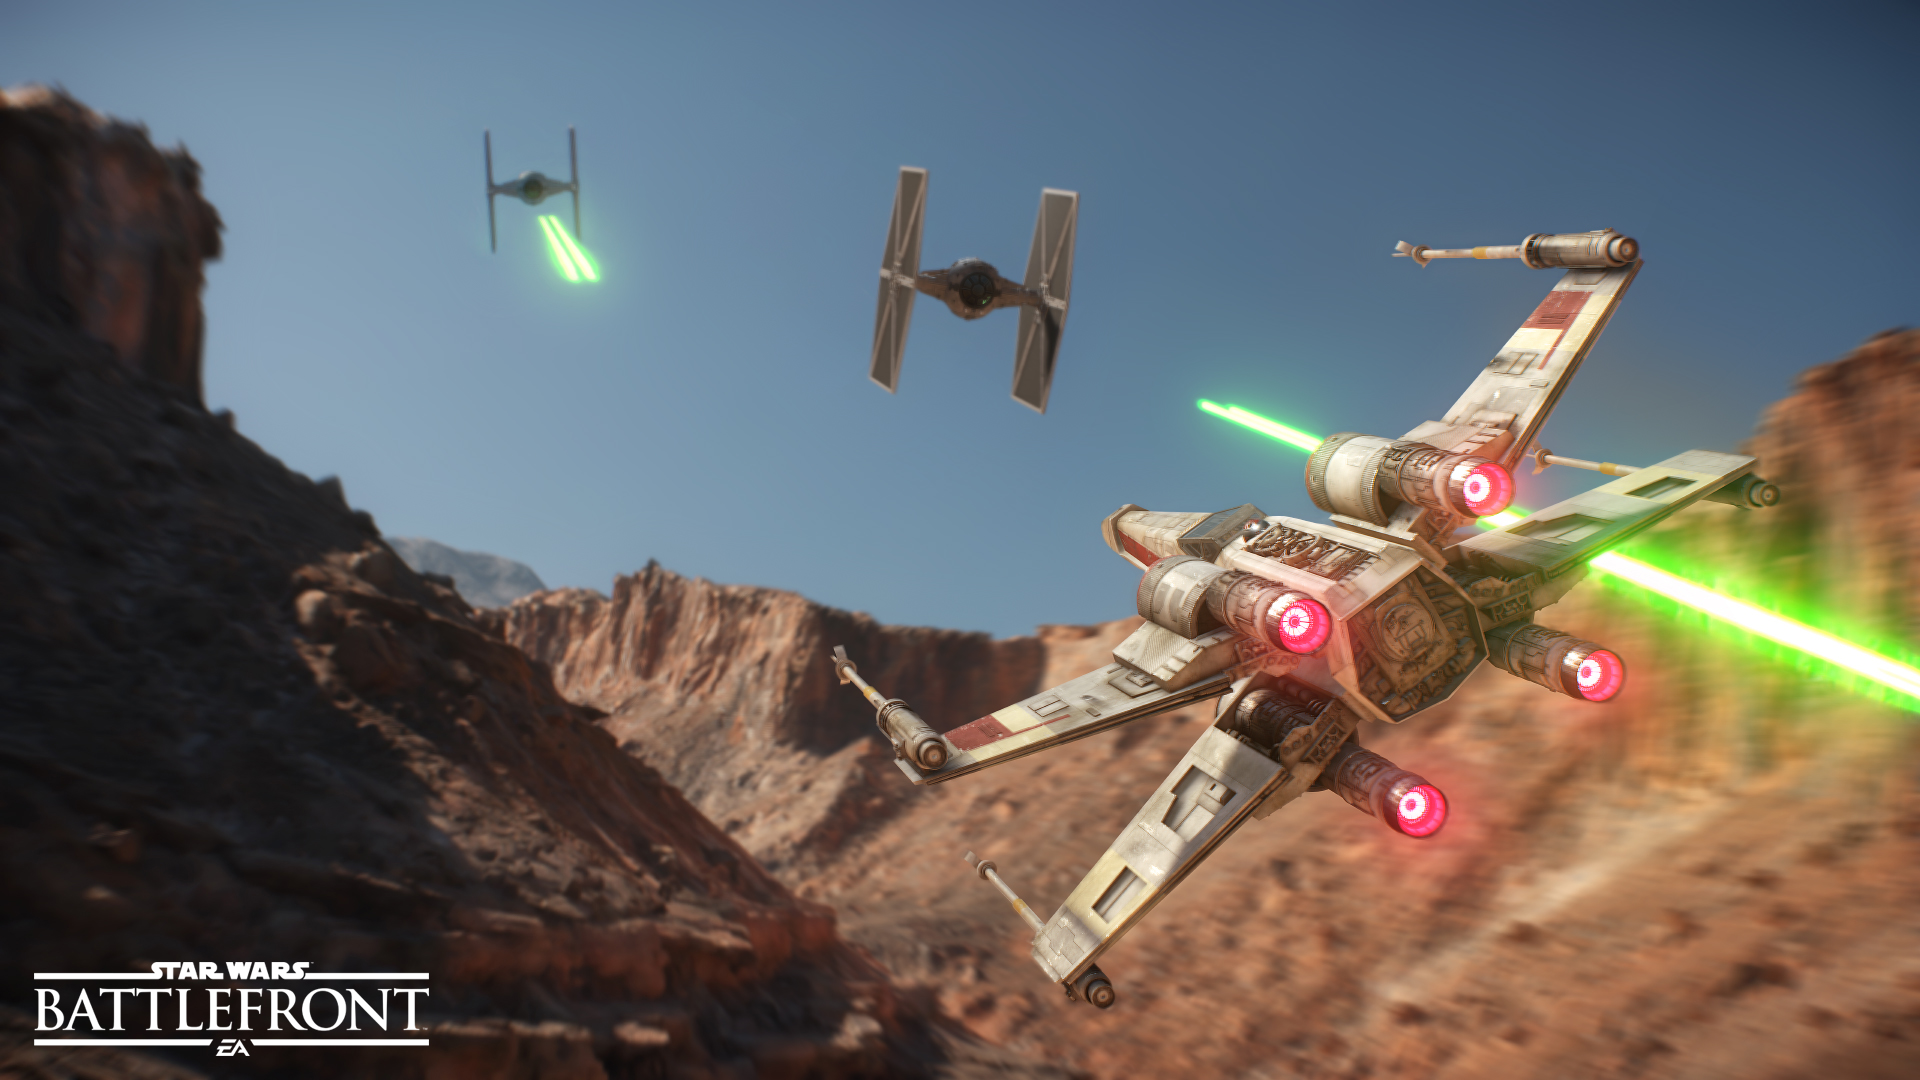 DICE Sacrificed Resolution for higher framerate in Star Wars Battlefornt